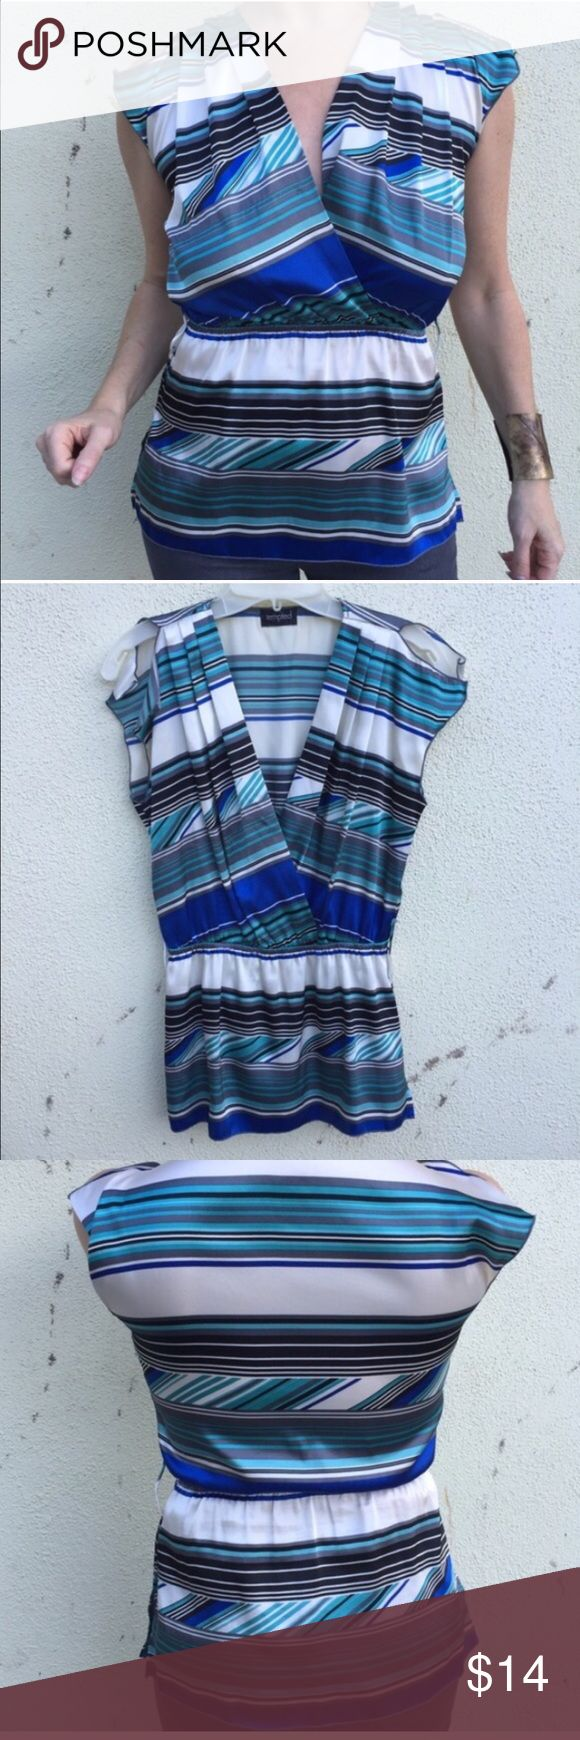 Blue white striped TOP blouse faux wrap tunic SZ M Satiny top with stripes, faux wrap neck and elastic waist creating almost a peplum silhouette. Great with straight skirts! Polyester. Fits medium. (O17) Tops Blouses